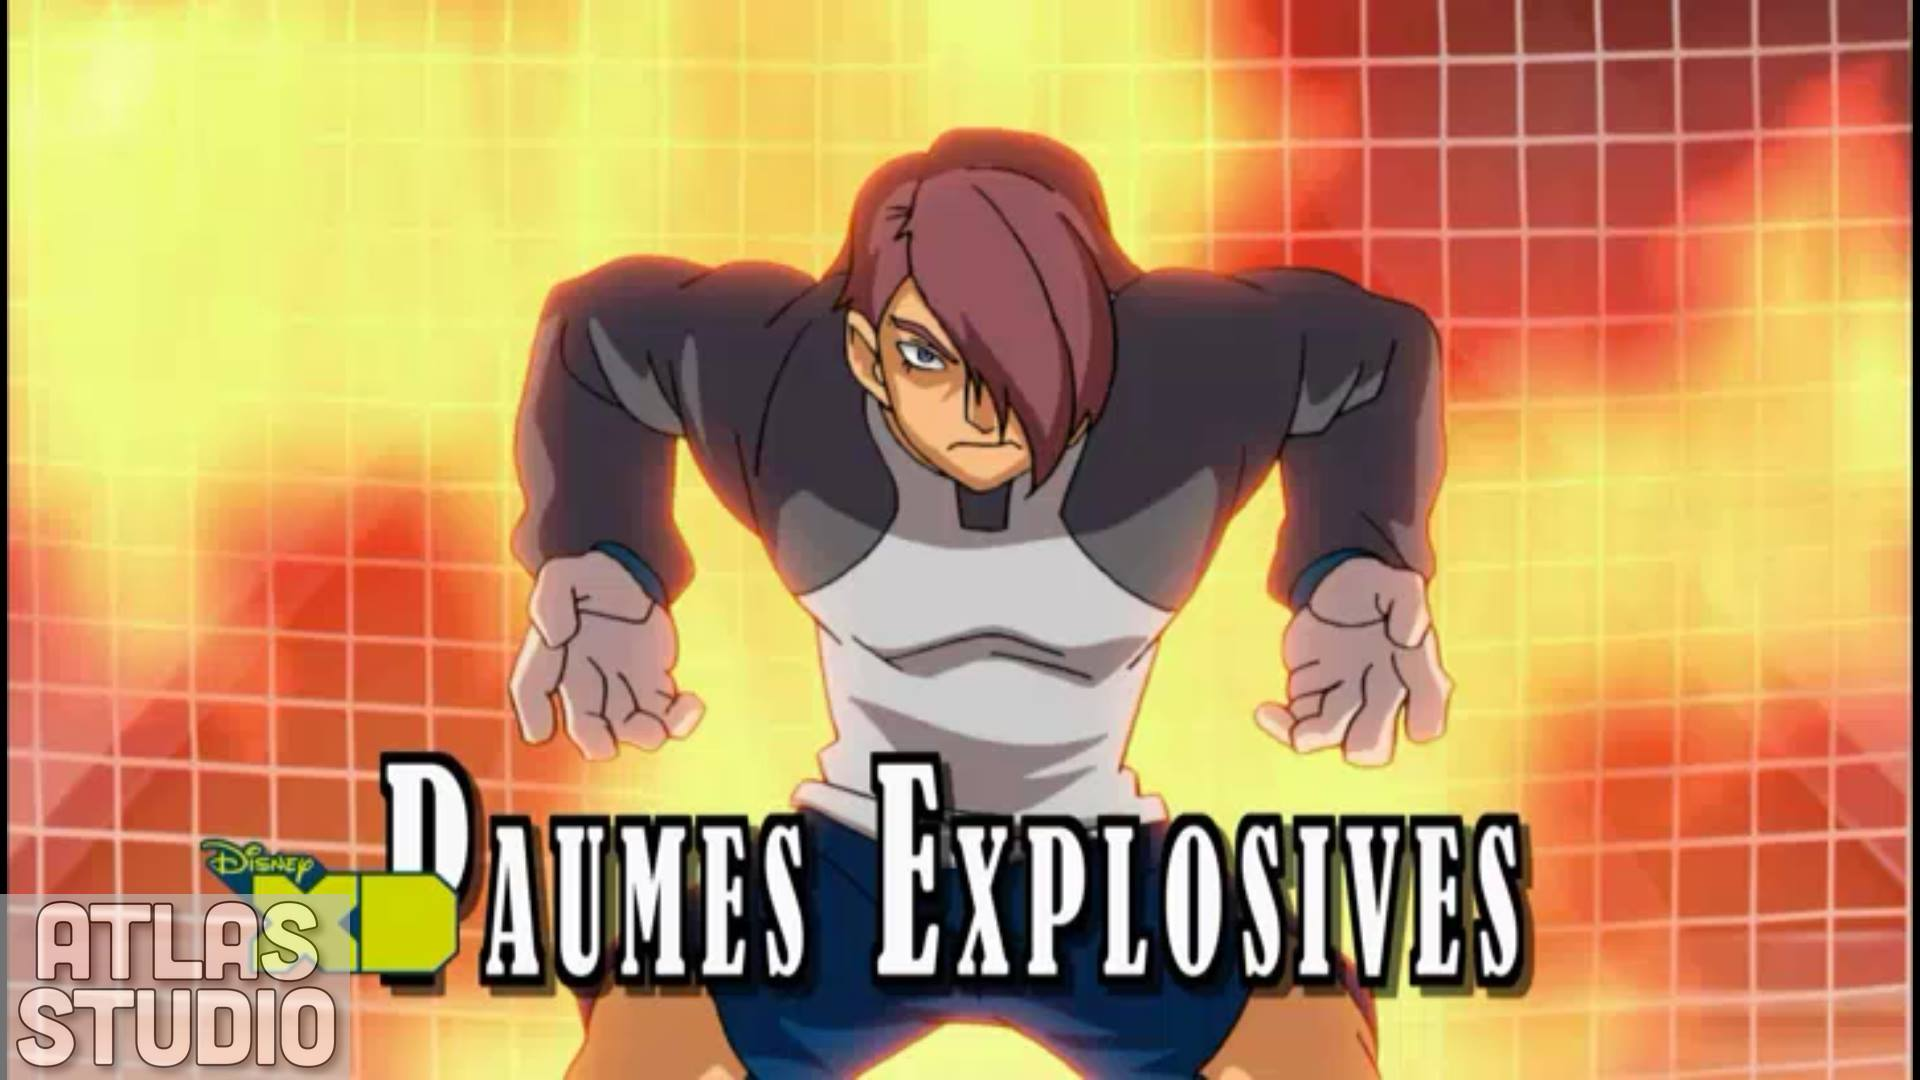 Paumes Explosives